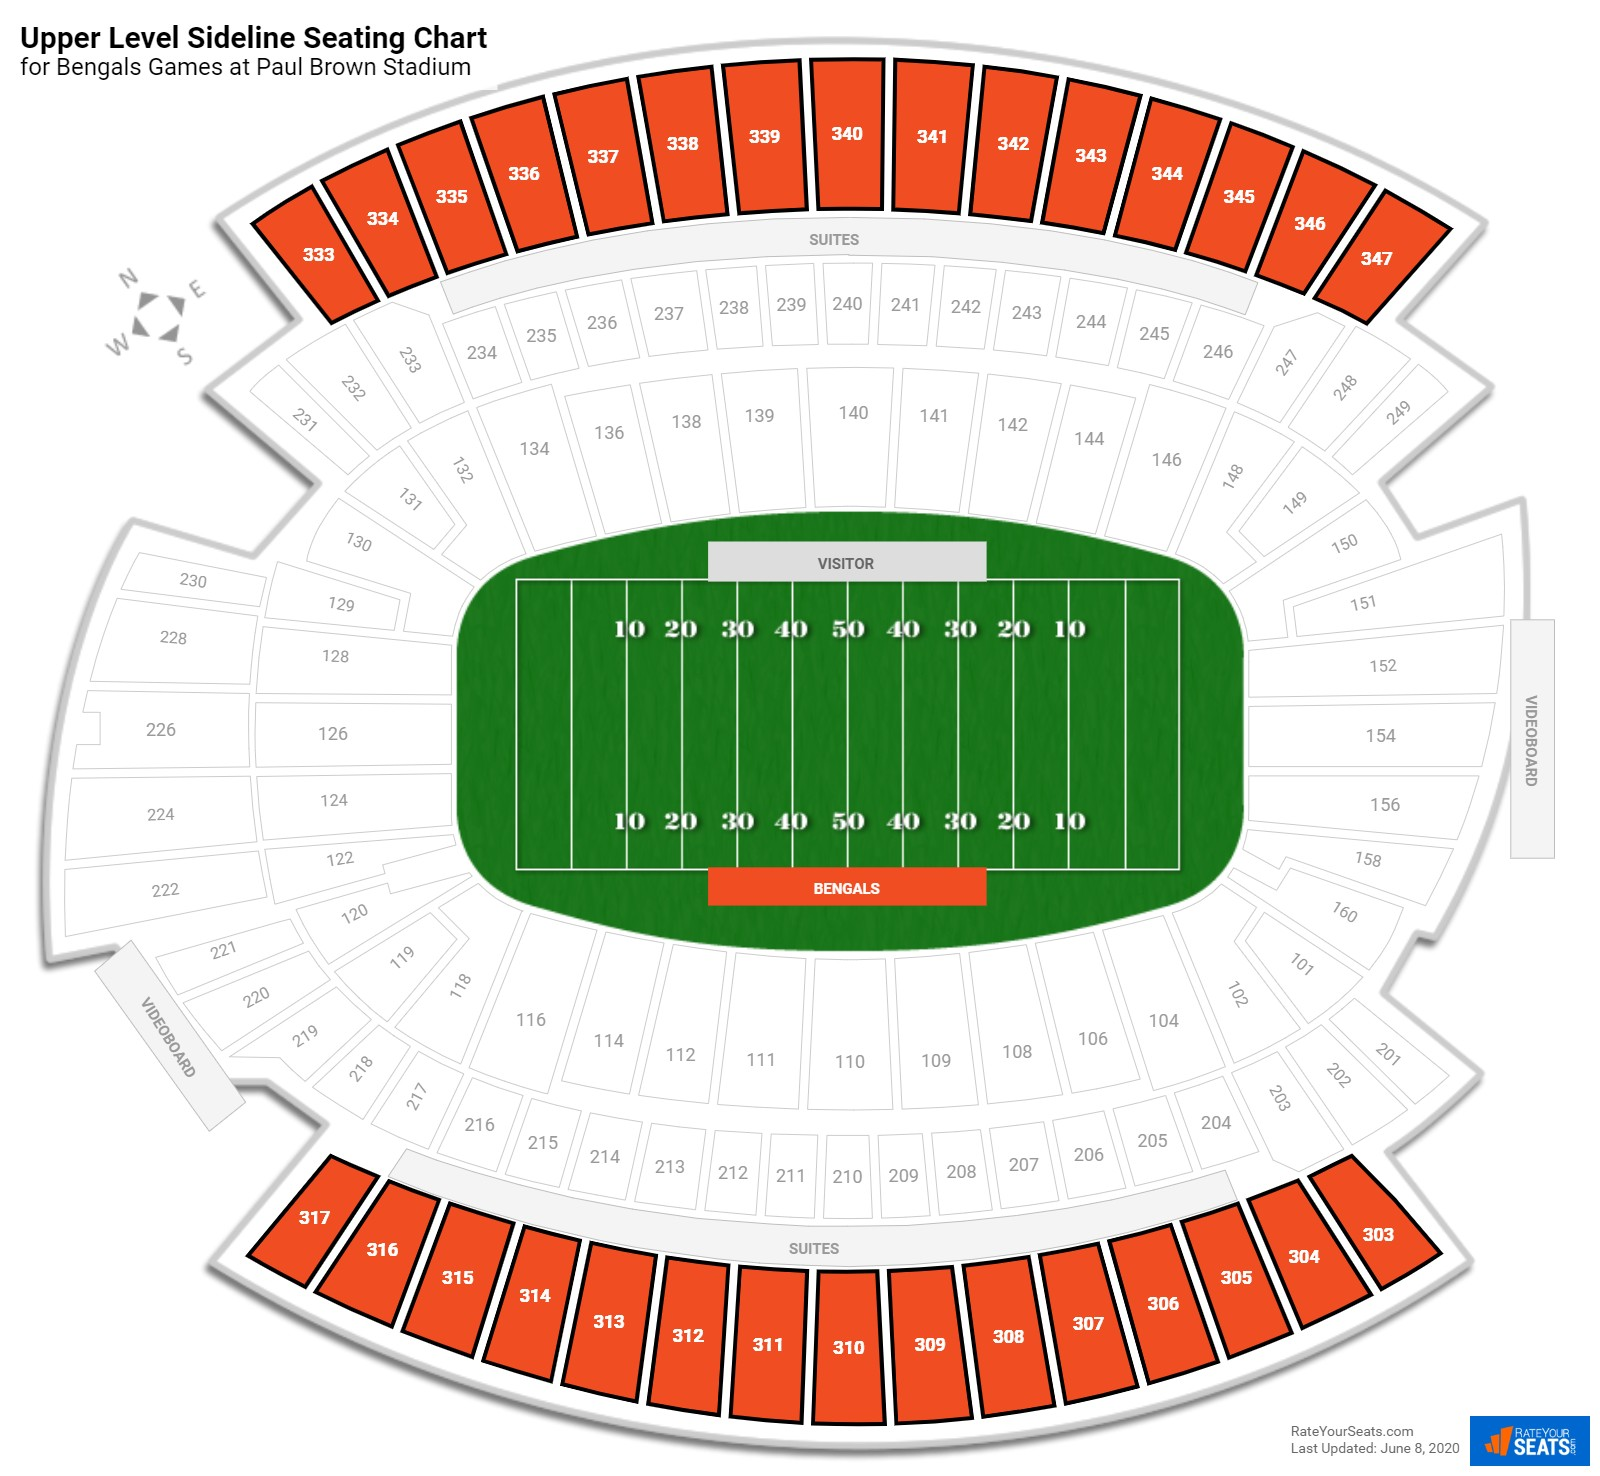 Paul Brown Stadium Upper Level Sideline seating chart